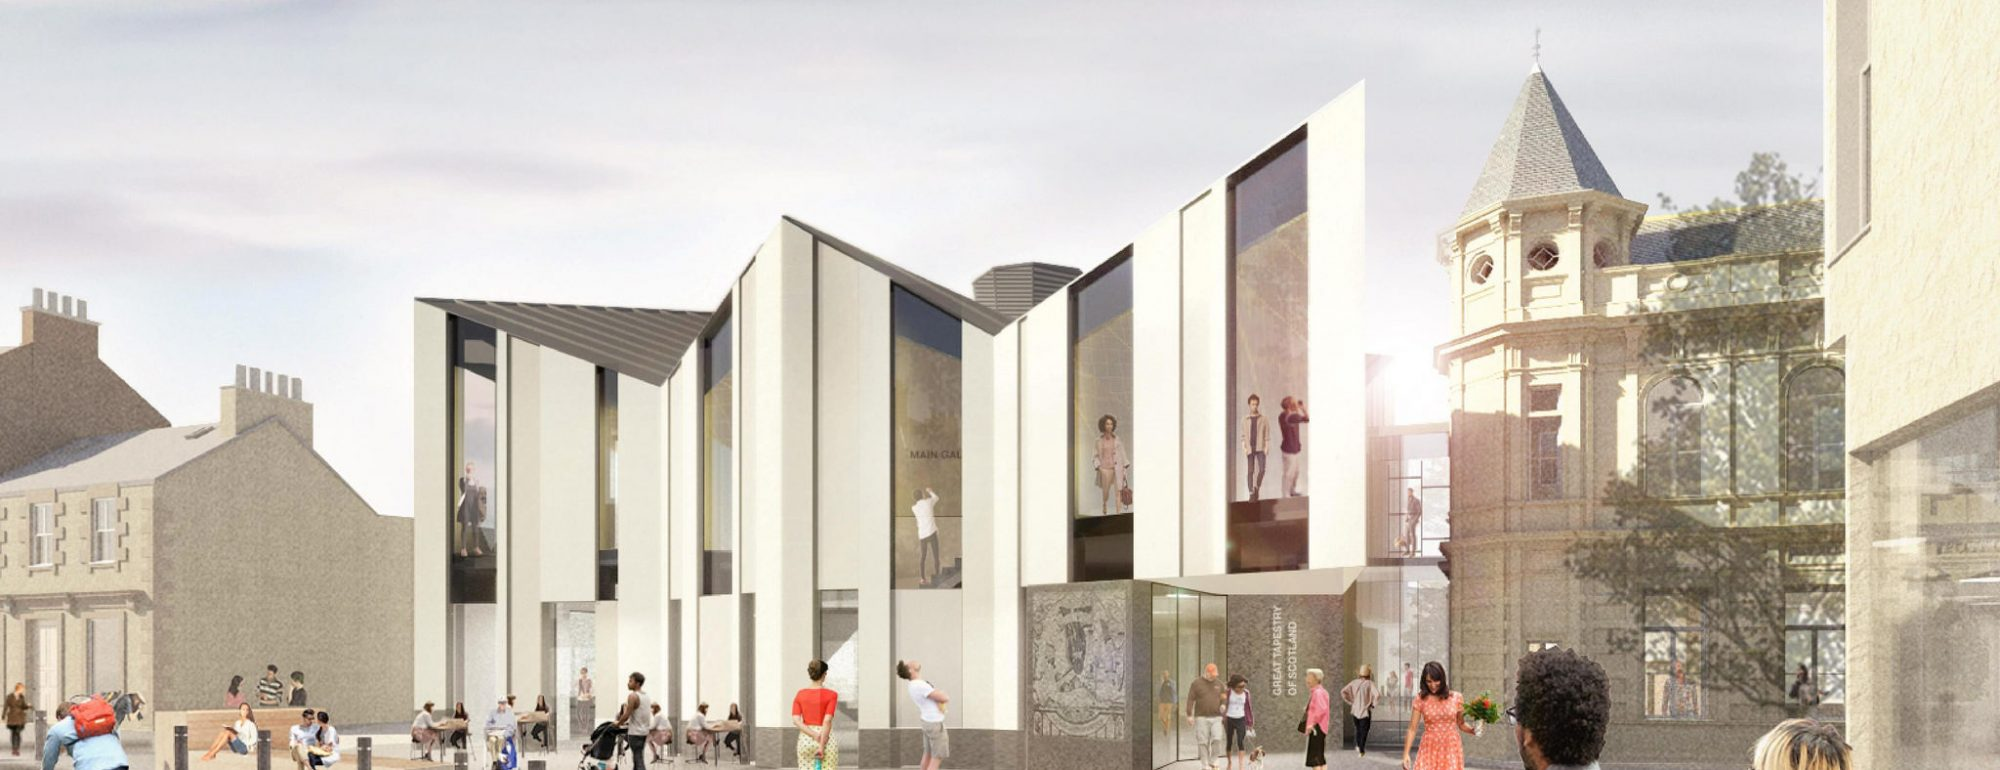 the-great-tapestry-of-scotland-building-visual